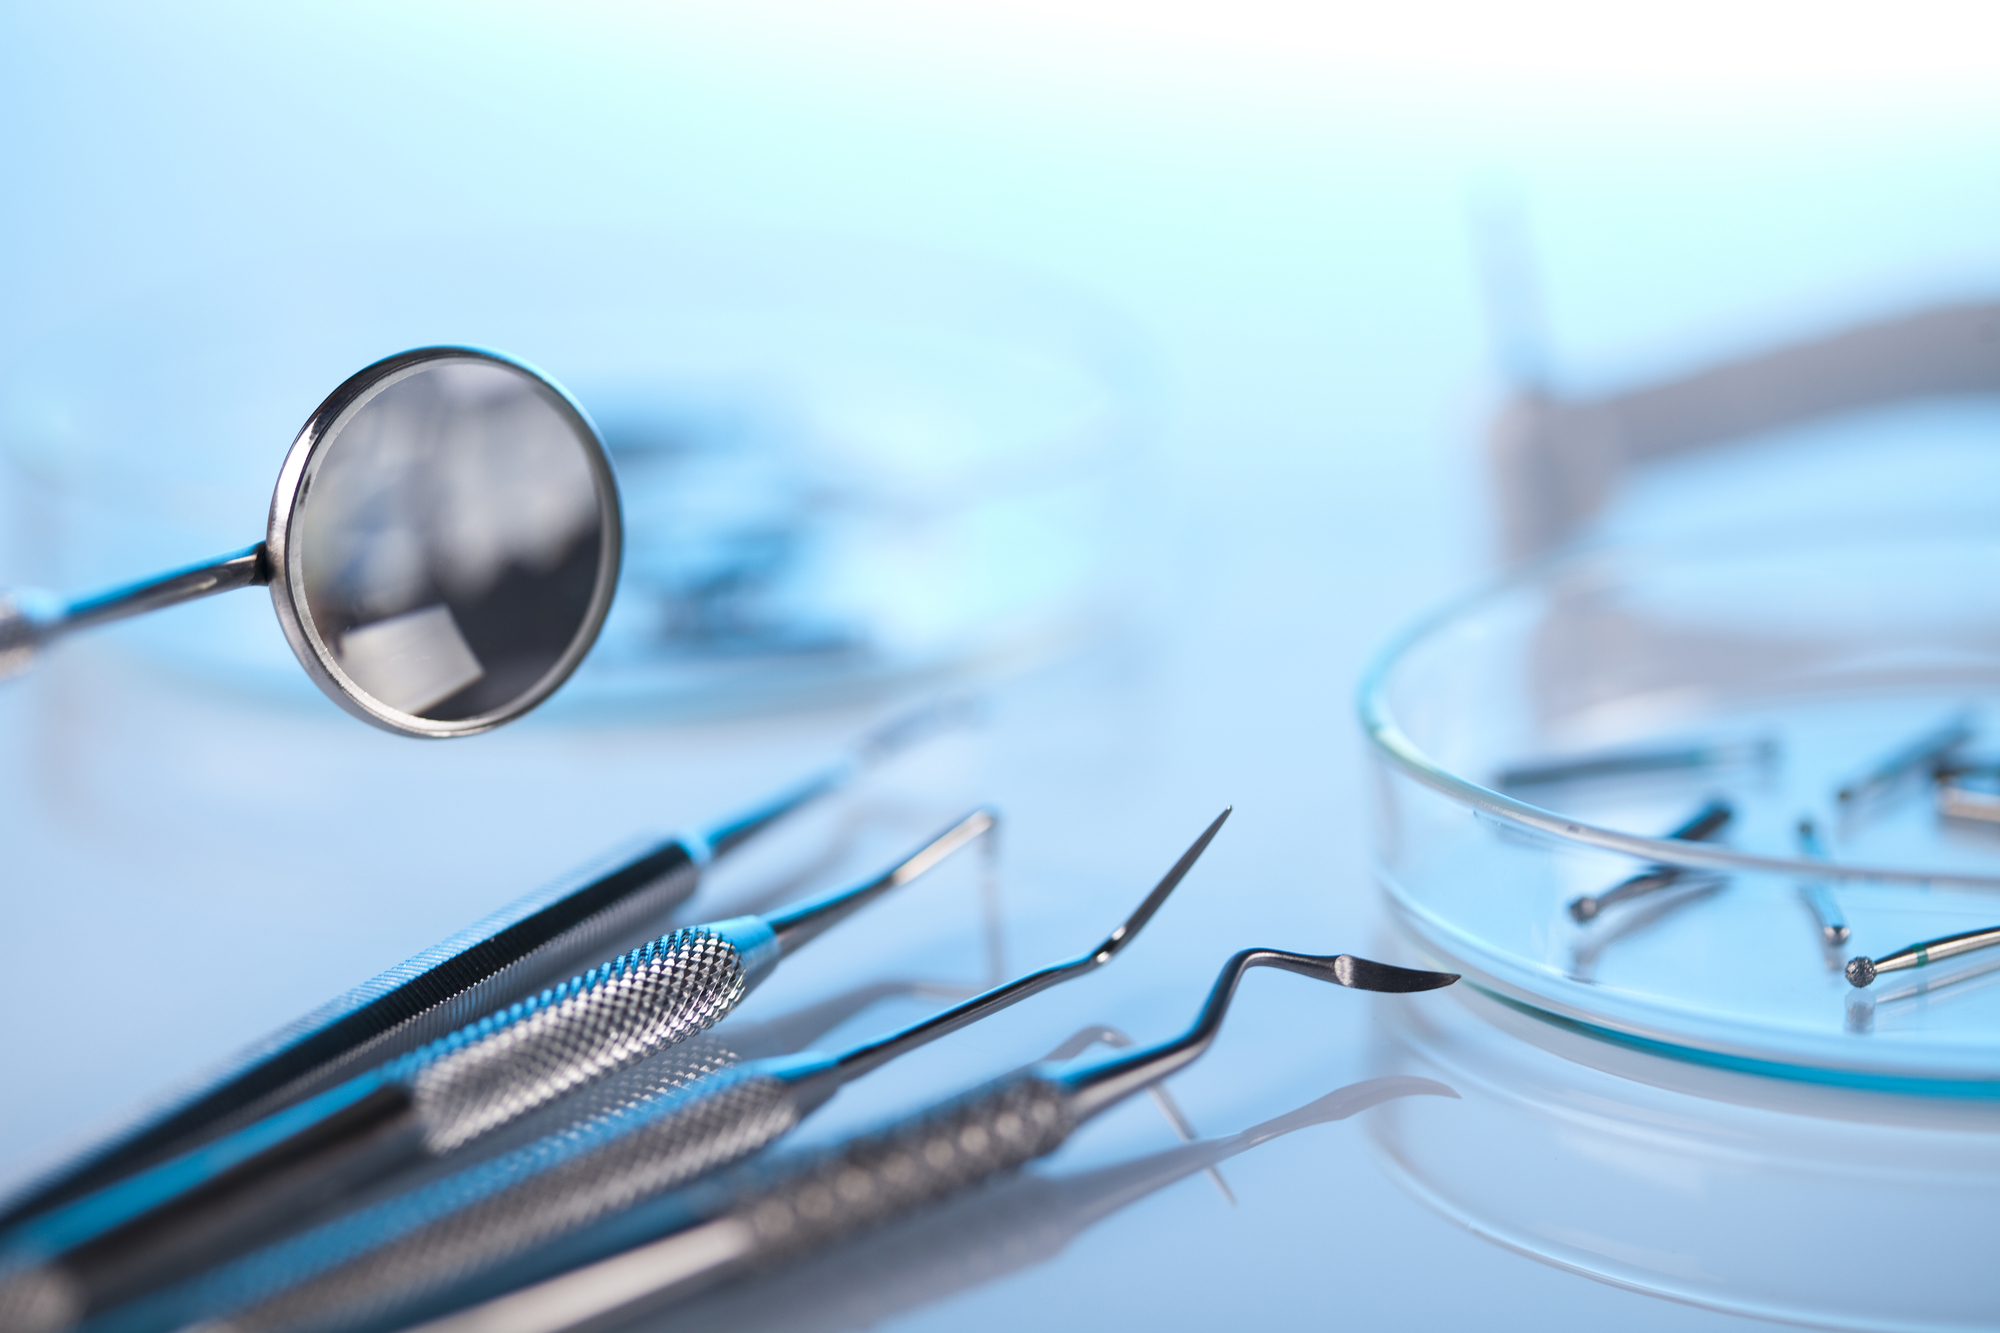 what is iv sedation wisdom teeth pembroke pines?